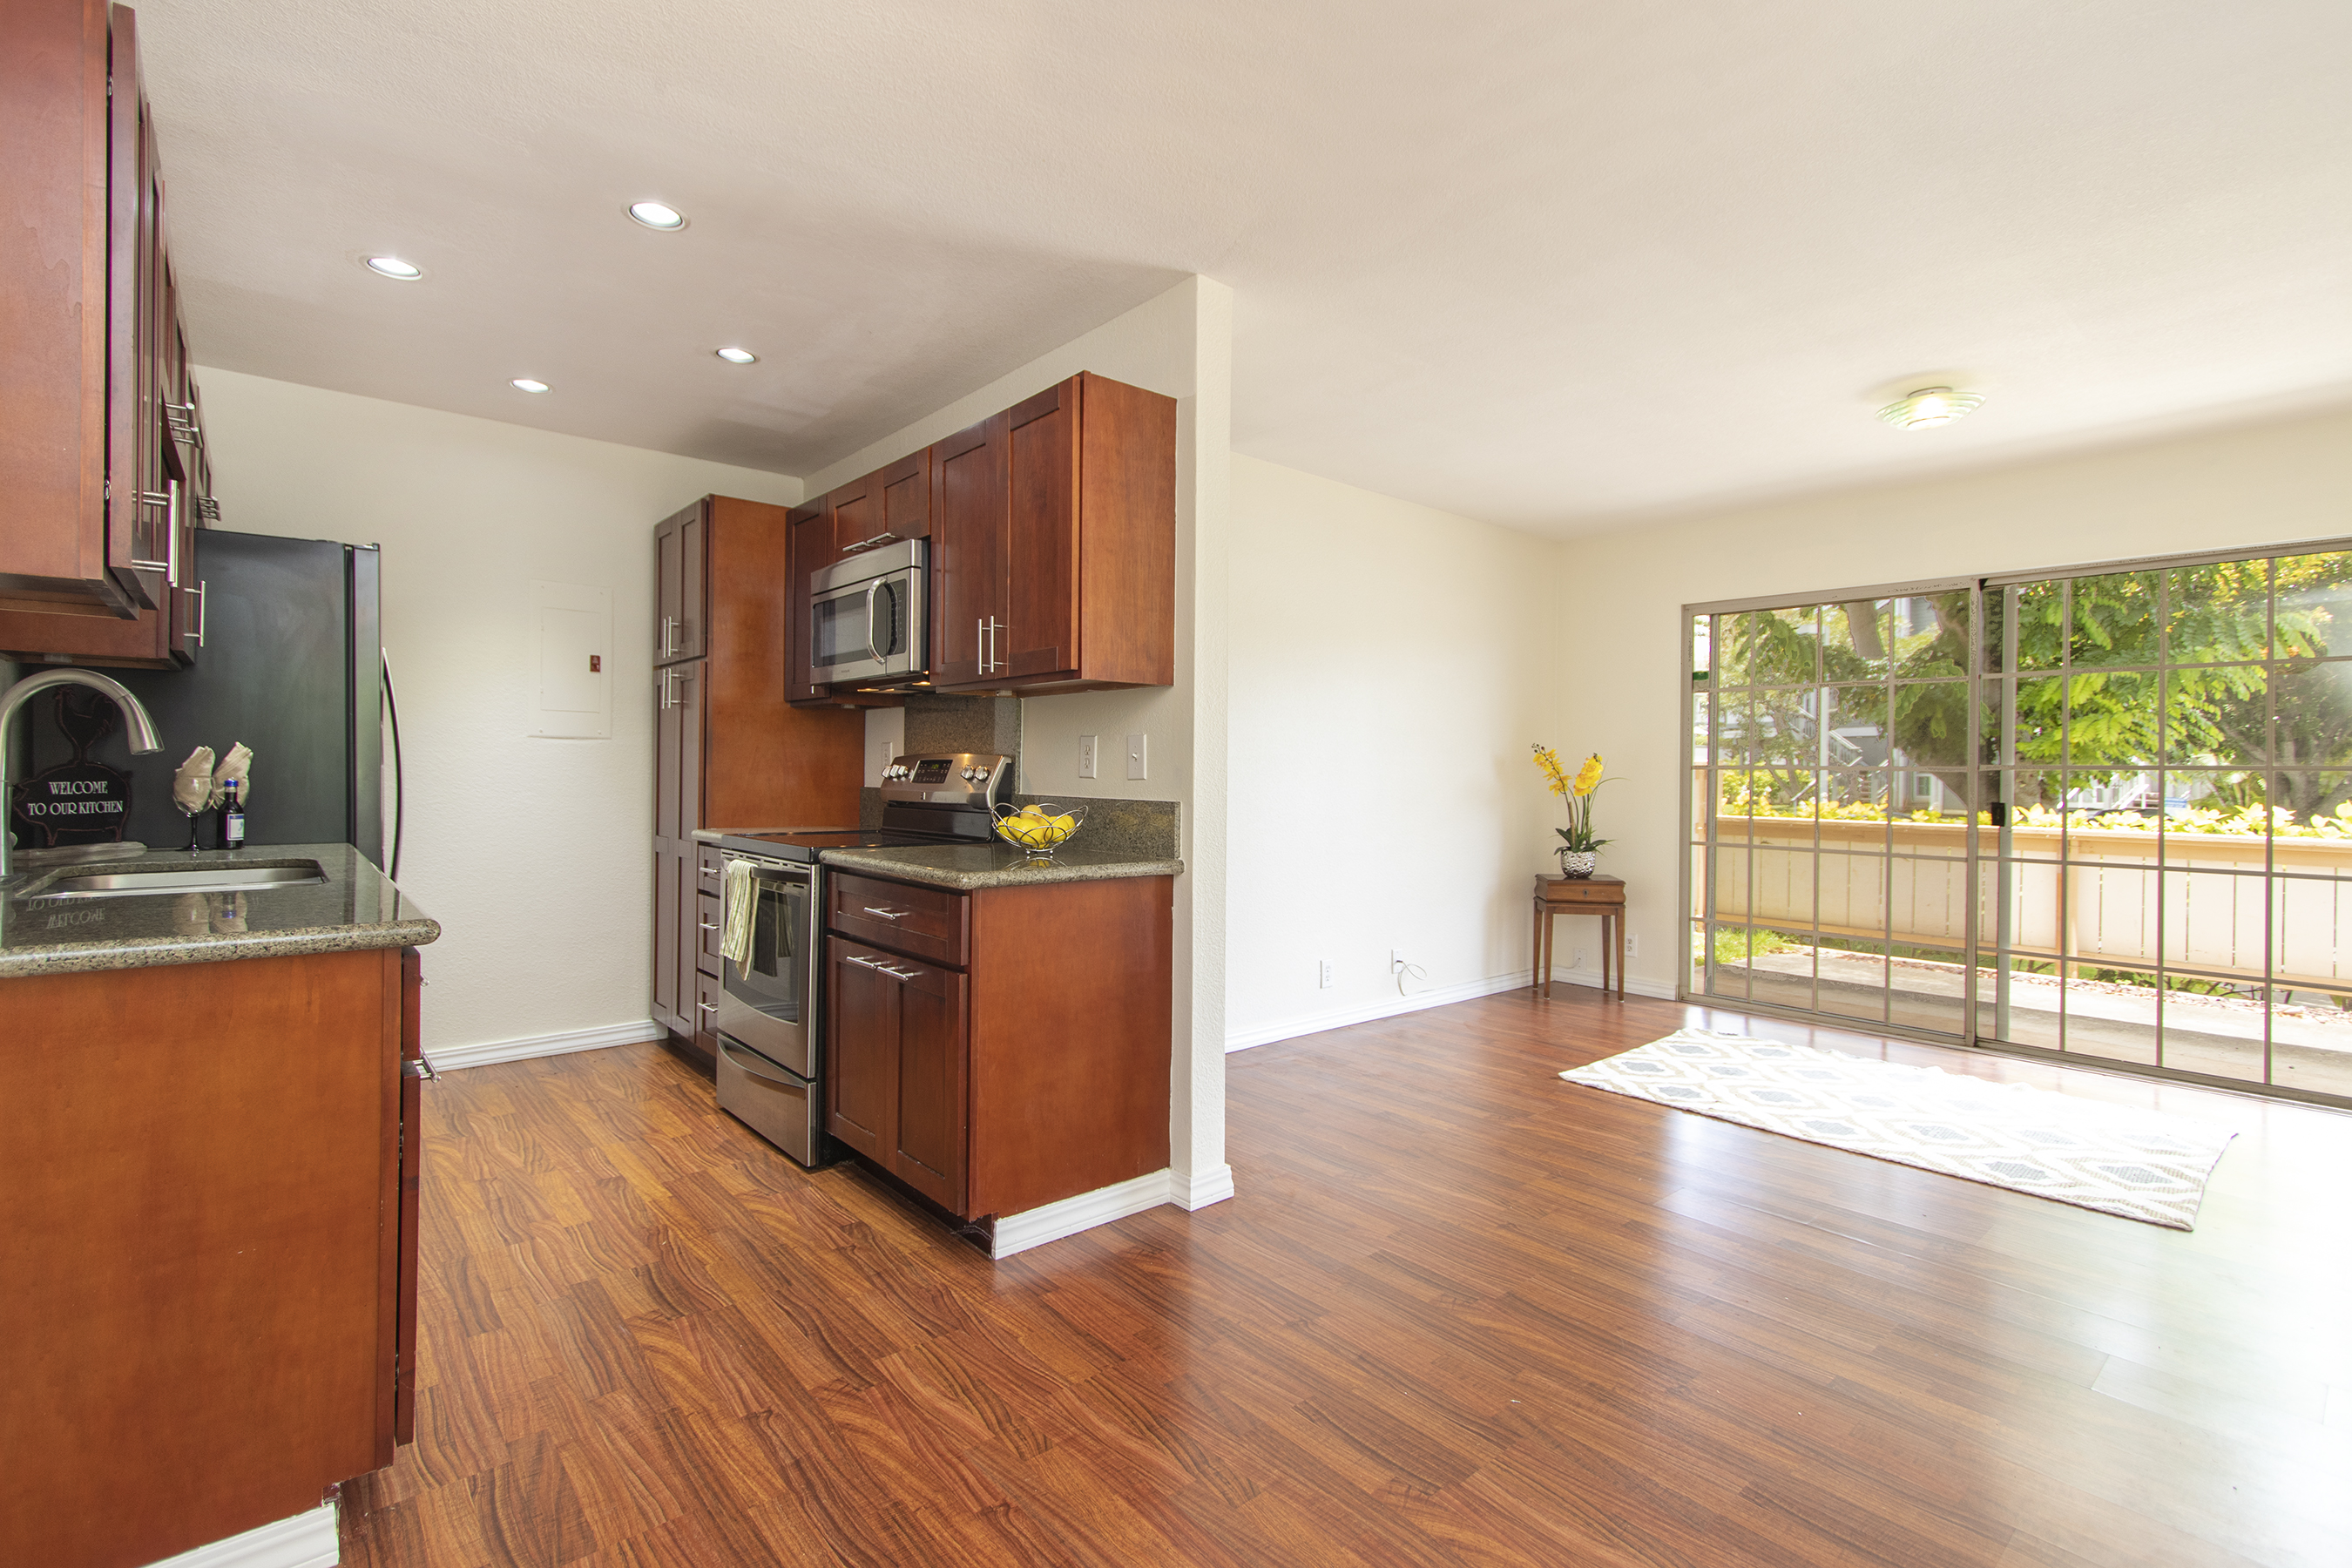 Kitchen and Living Room View at 311 Mananai Place #45a, Honolulu, HI 96818